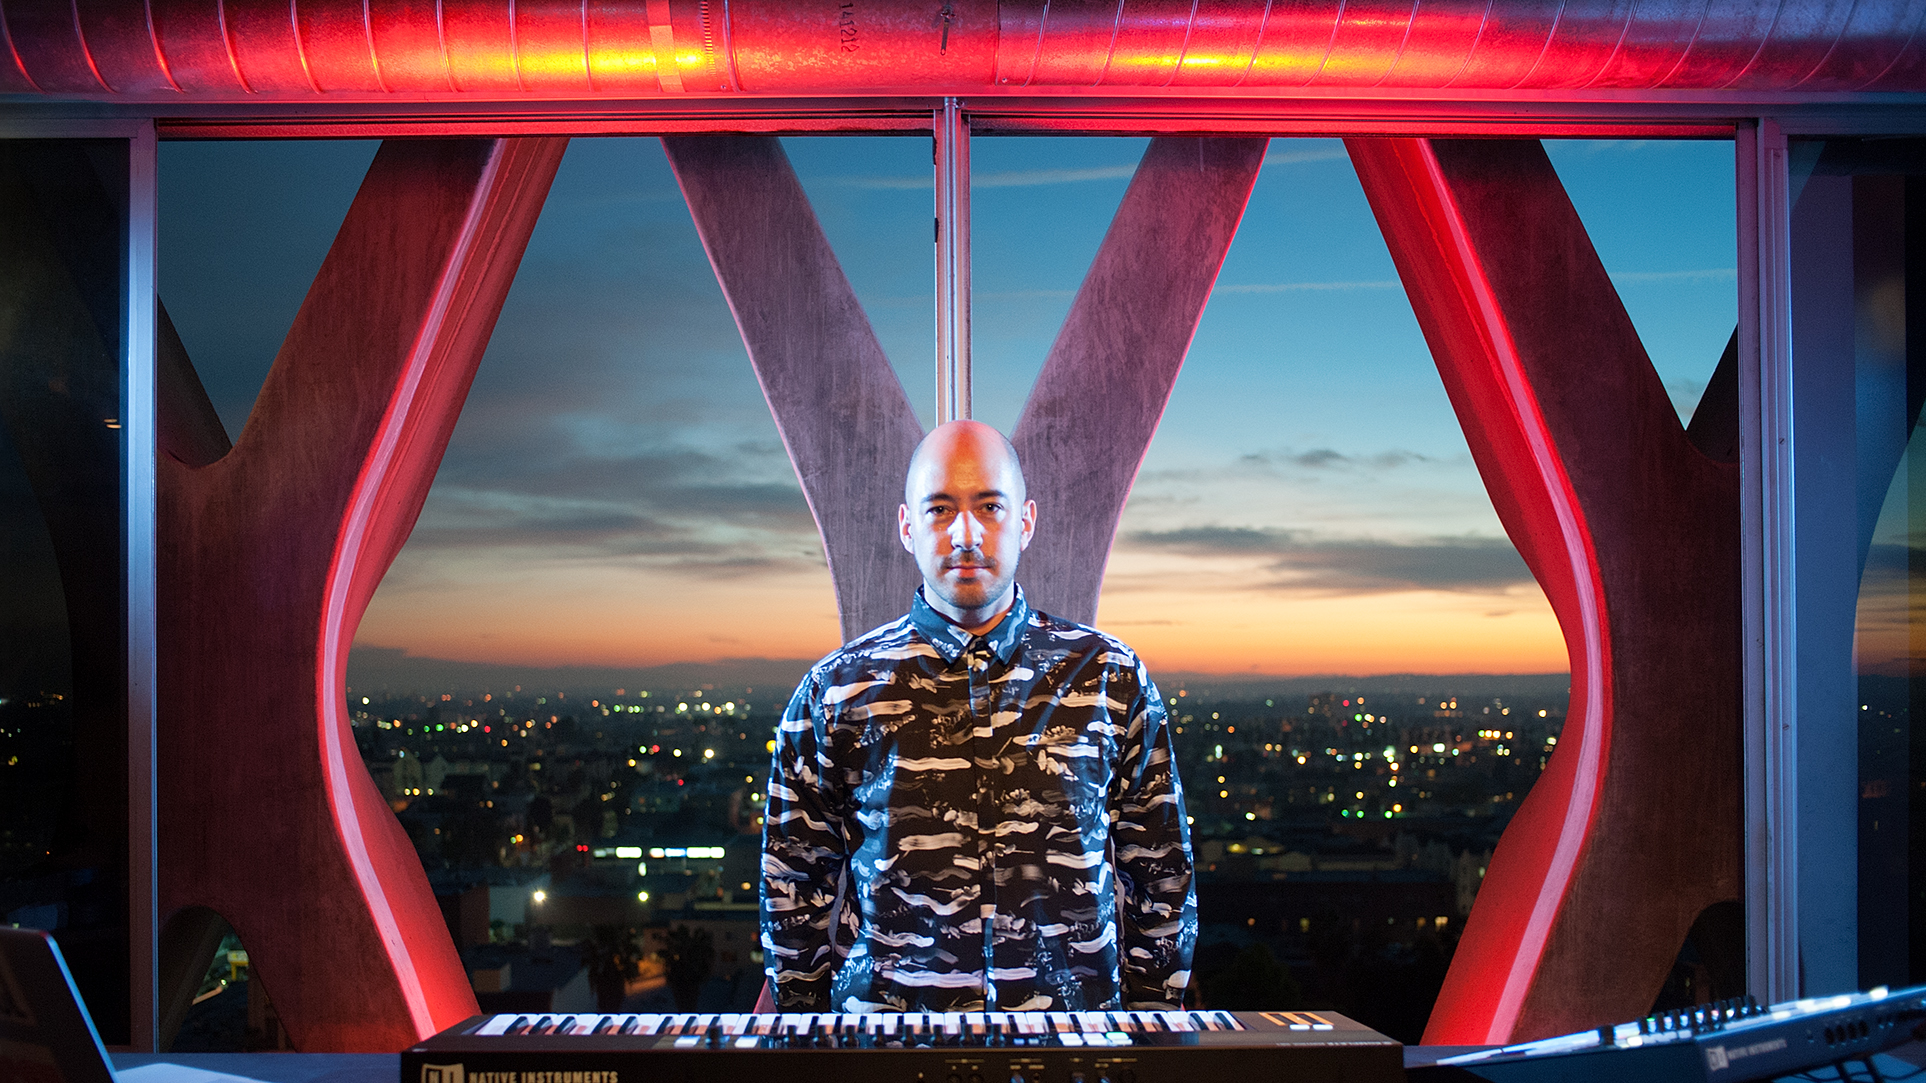 Mark de Clive-Lowe standing behind his keyboard and Maschine for the Native Instruments Komplete x Maschine shoot